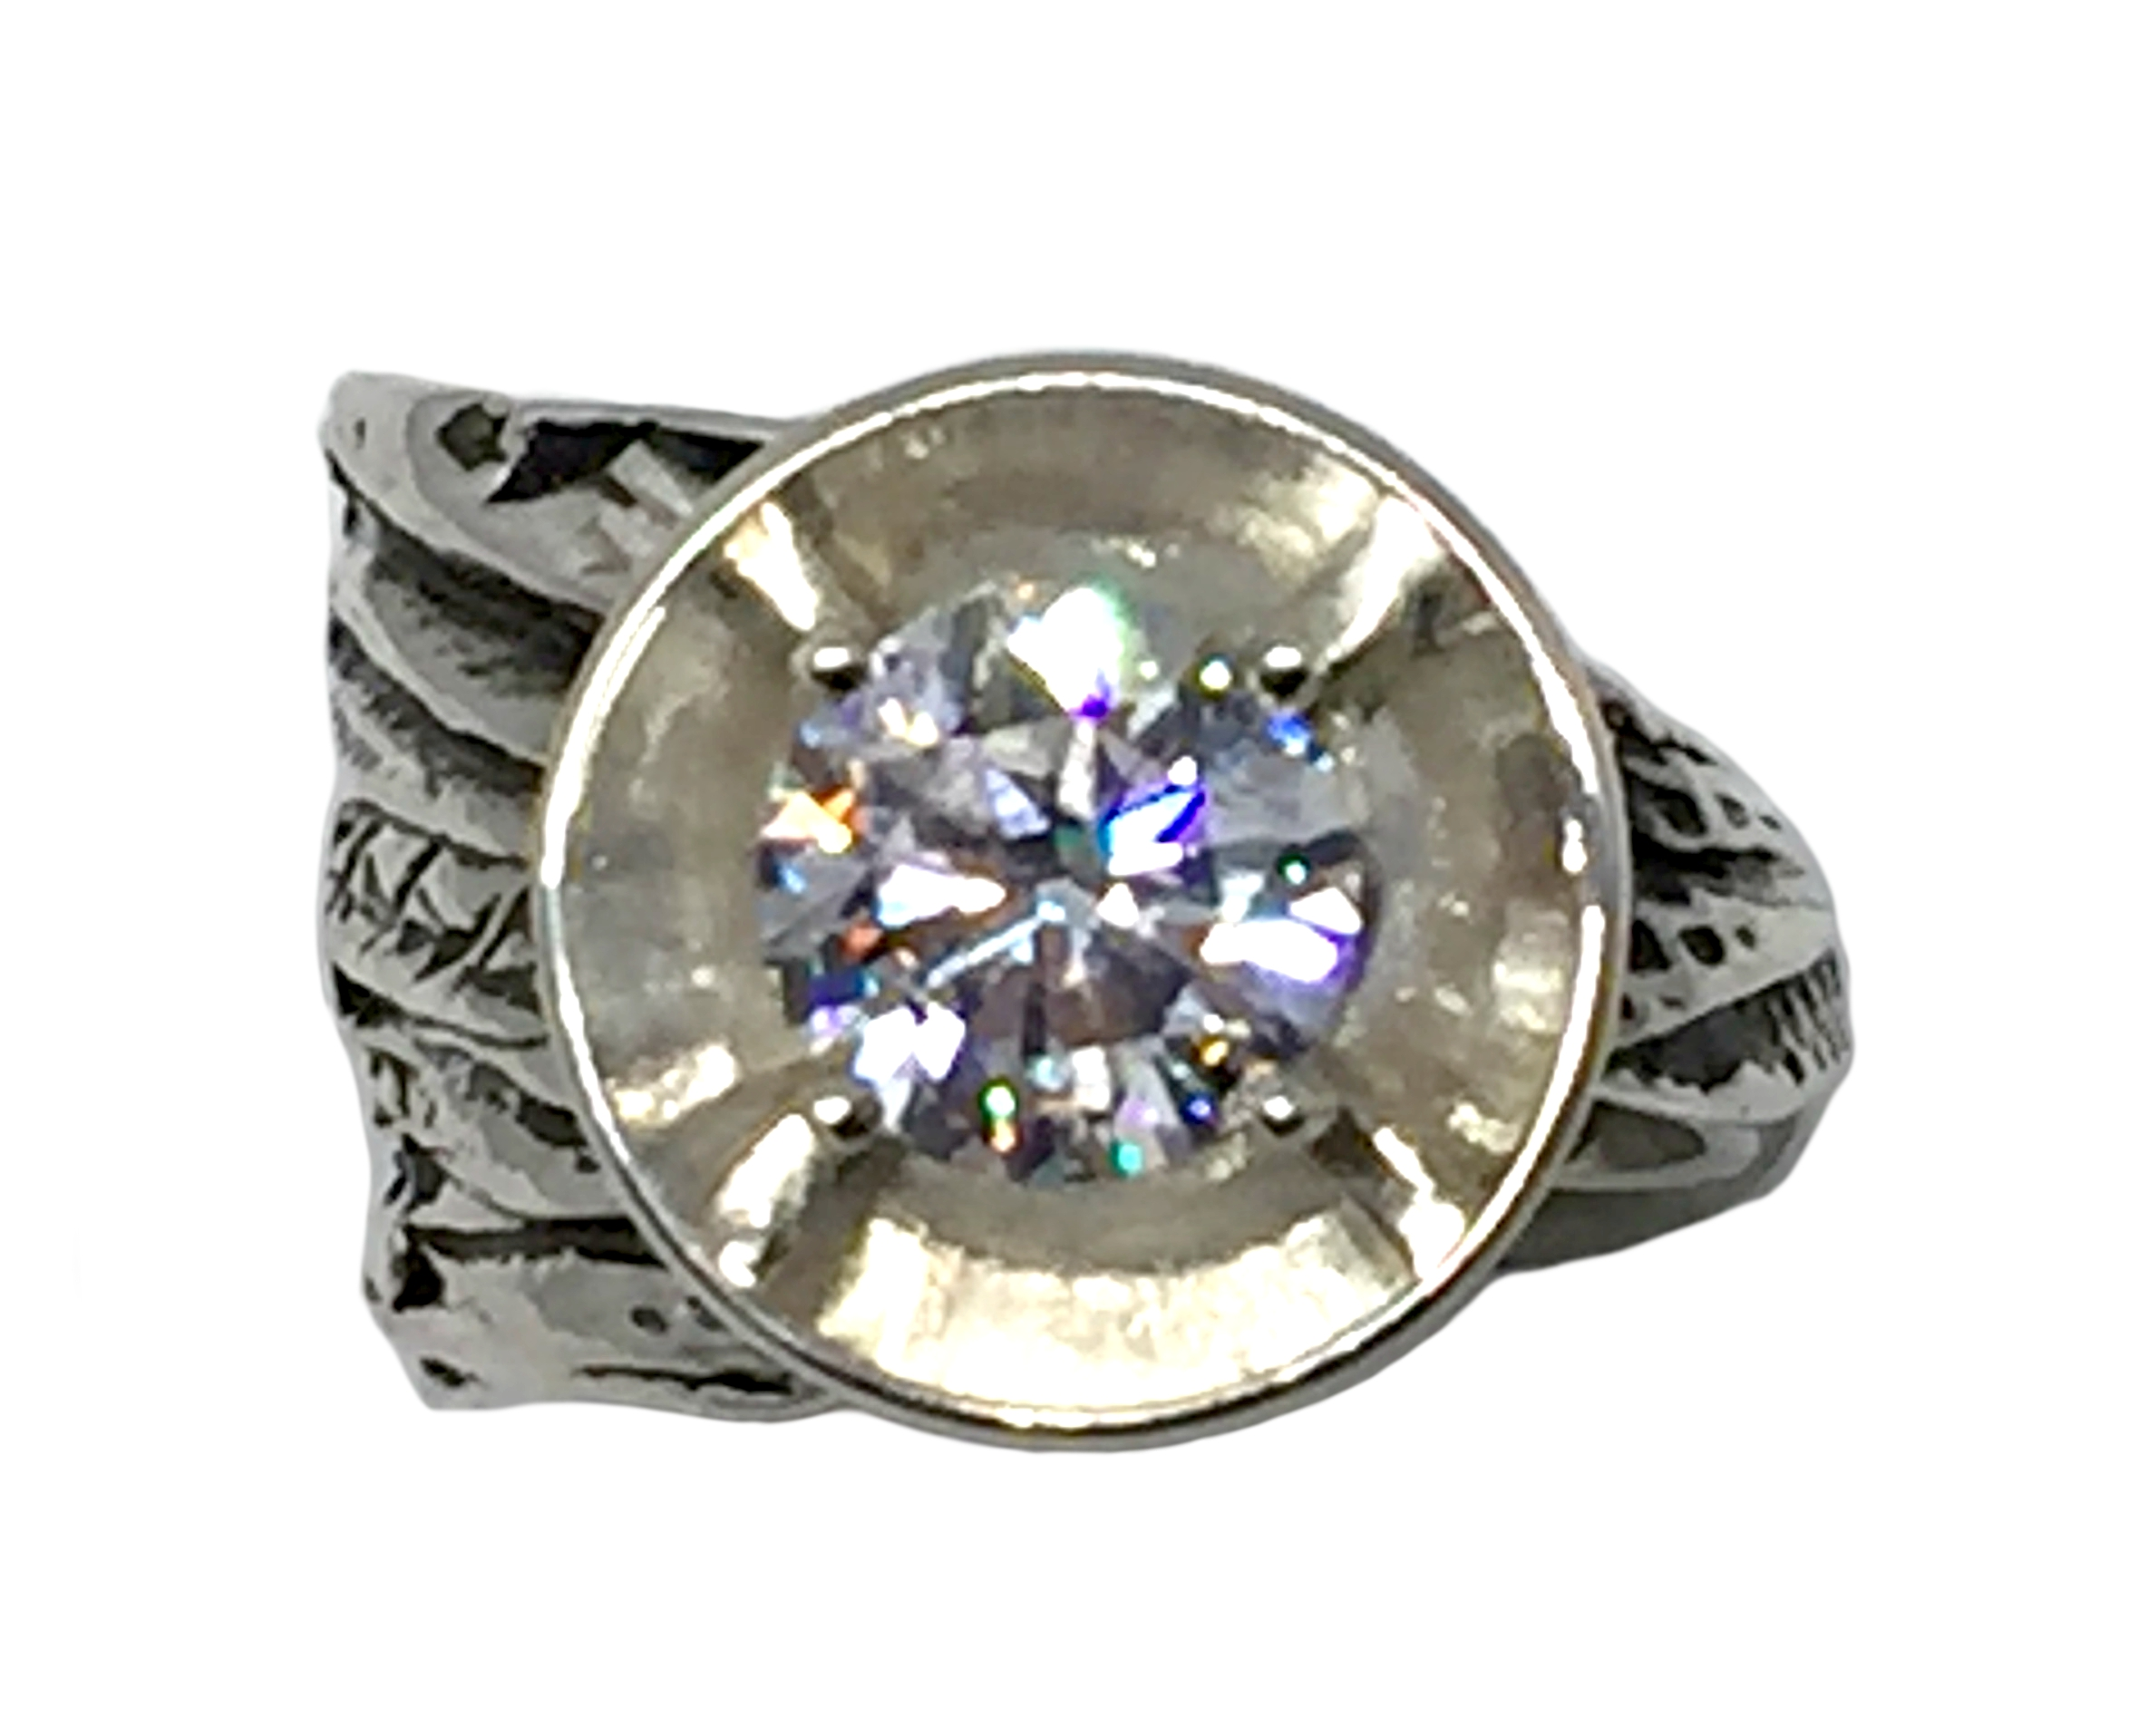 Sterling silver and CZ ring by Karyn Chopik | Effusion Art Gallery + Cast Glass Studio, Invermere BC